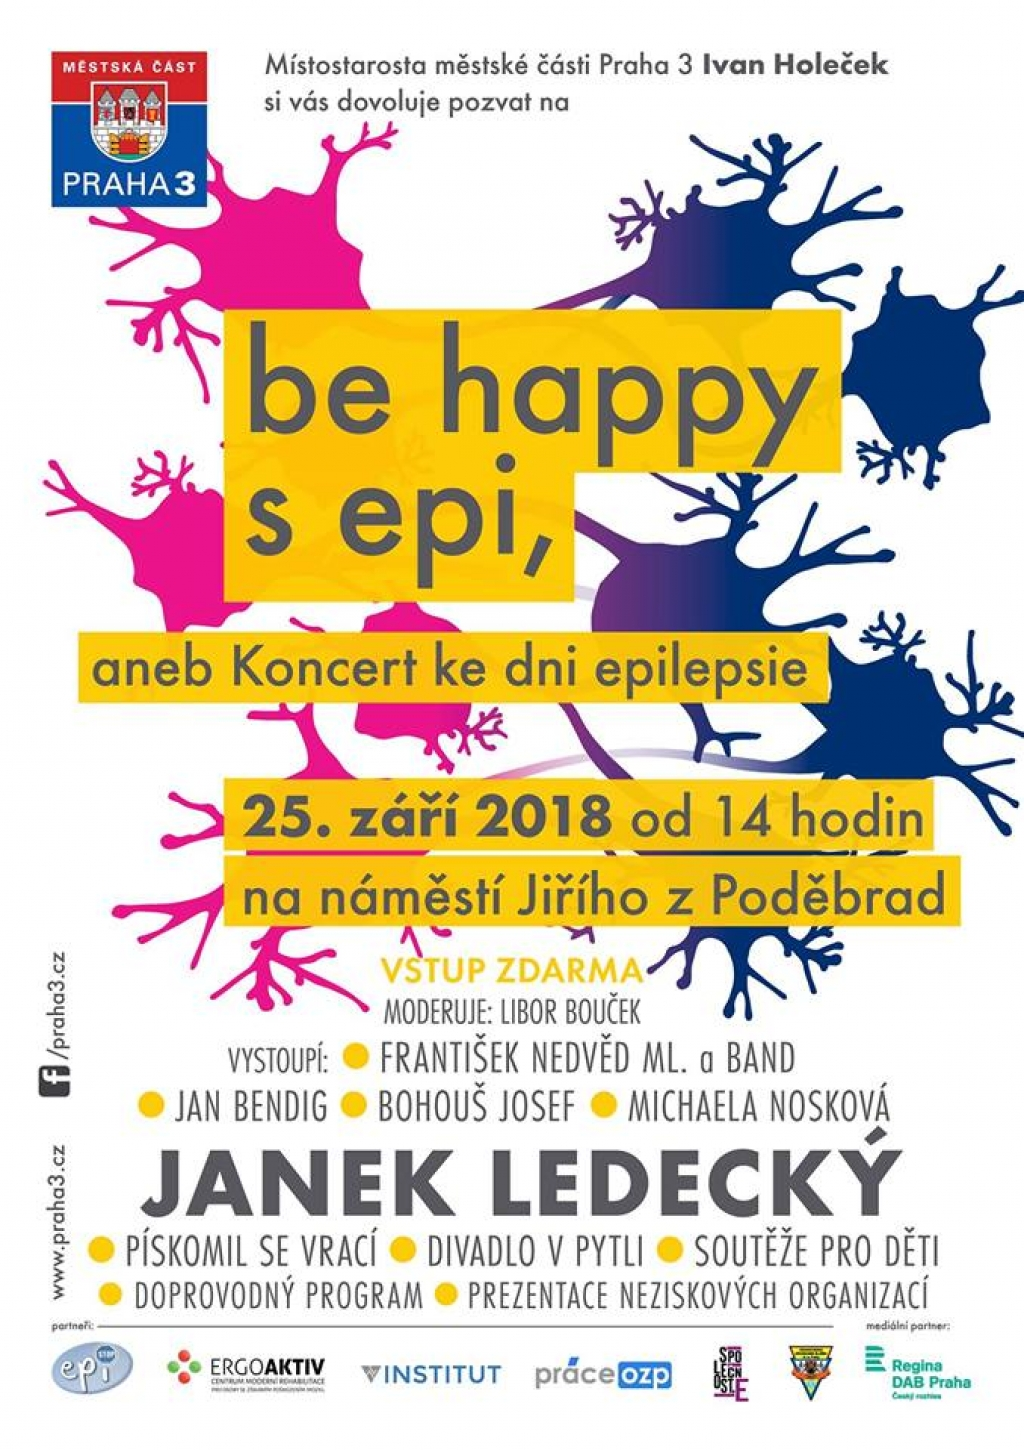 Be happy s epi 2018